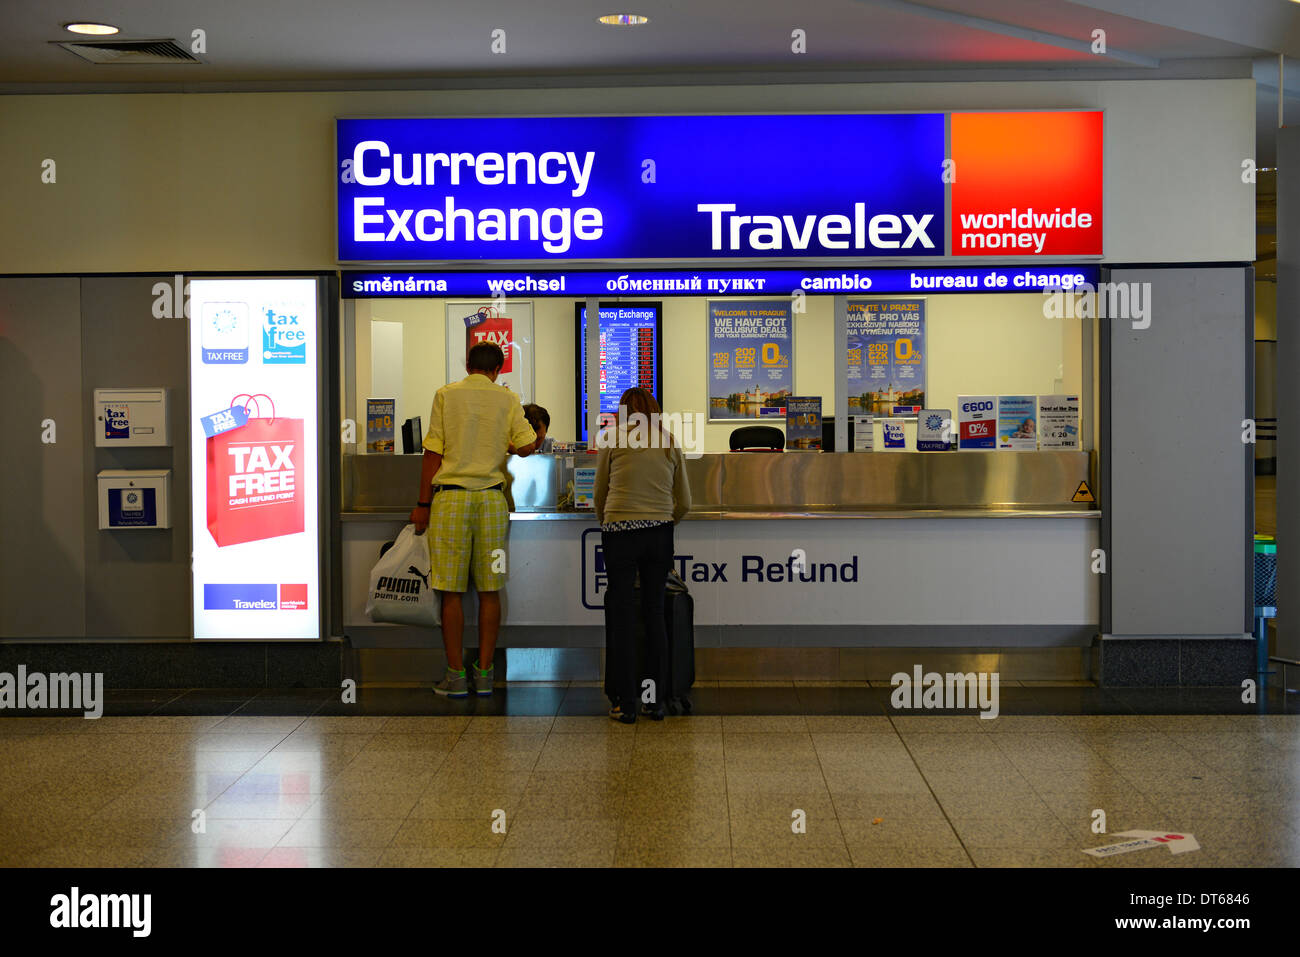 Forex exchange bangalore airport